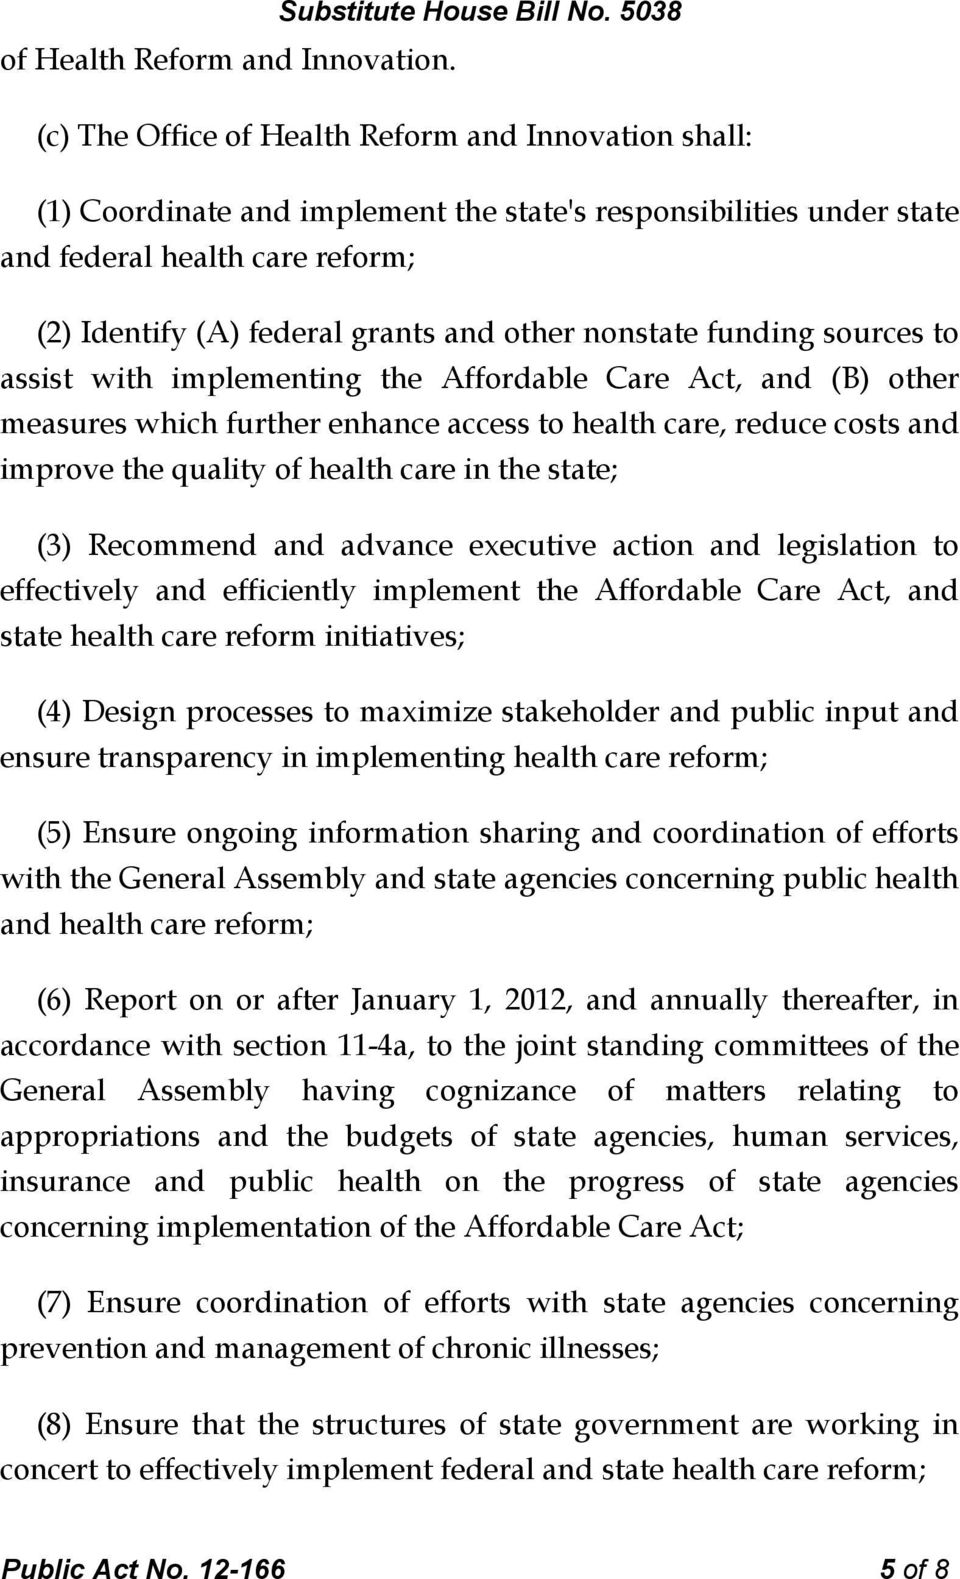 nonstate funding sources to assist with implementing the Affordable Care Act, and (B) other measures which further enhance access to health care, reduce costs and improve the quality of health care